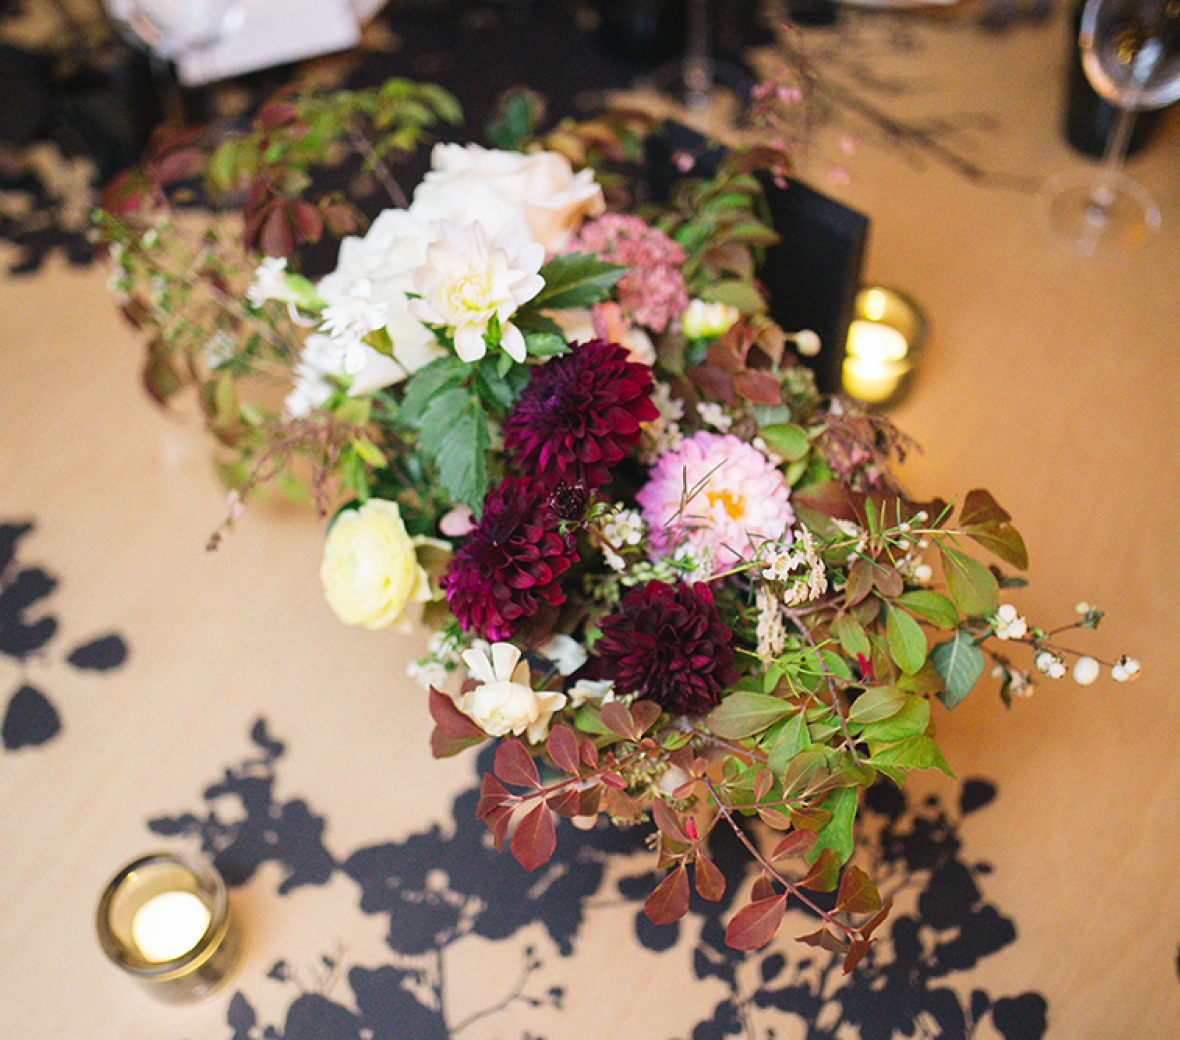 A colorful flower arrangement on a wooden table.